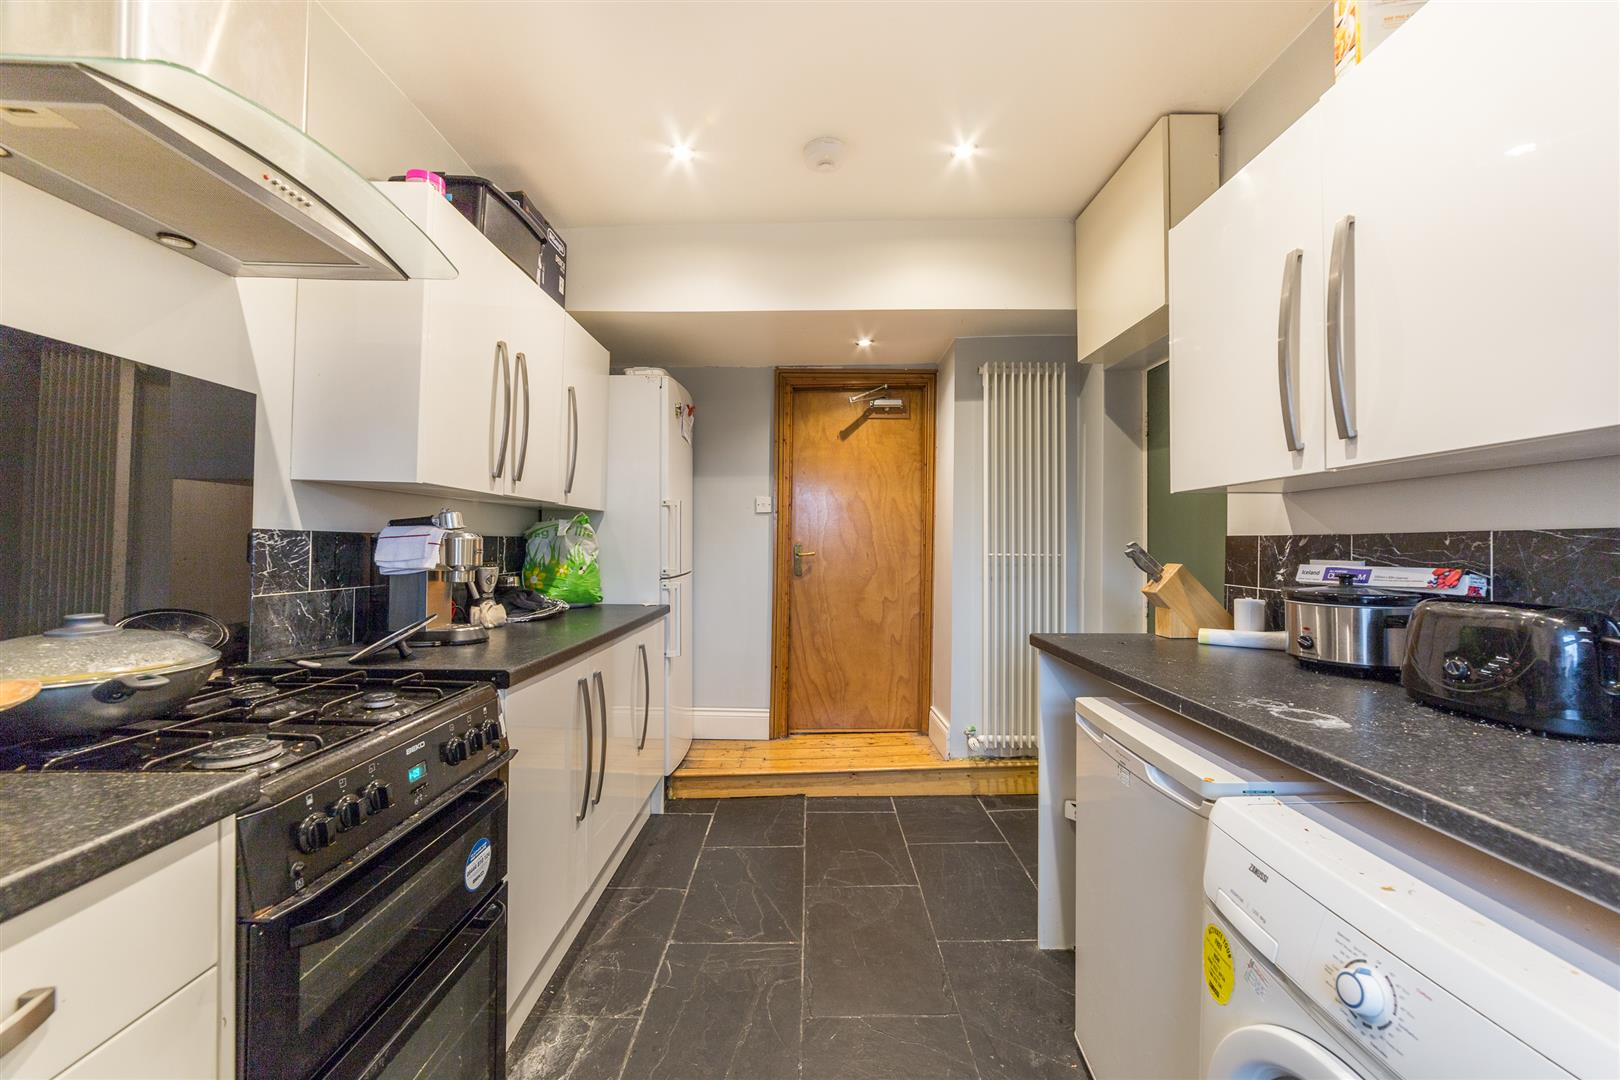 5 bed terraced house to rent in Newcastle Upon Tyne, NE4 5NL  - Property Image 4